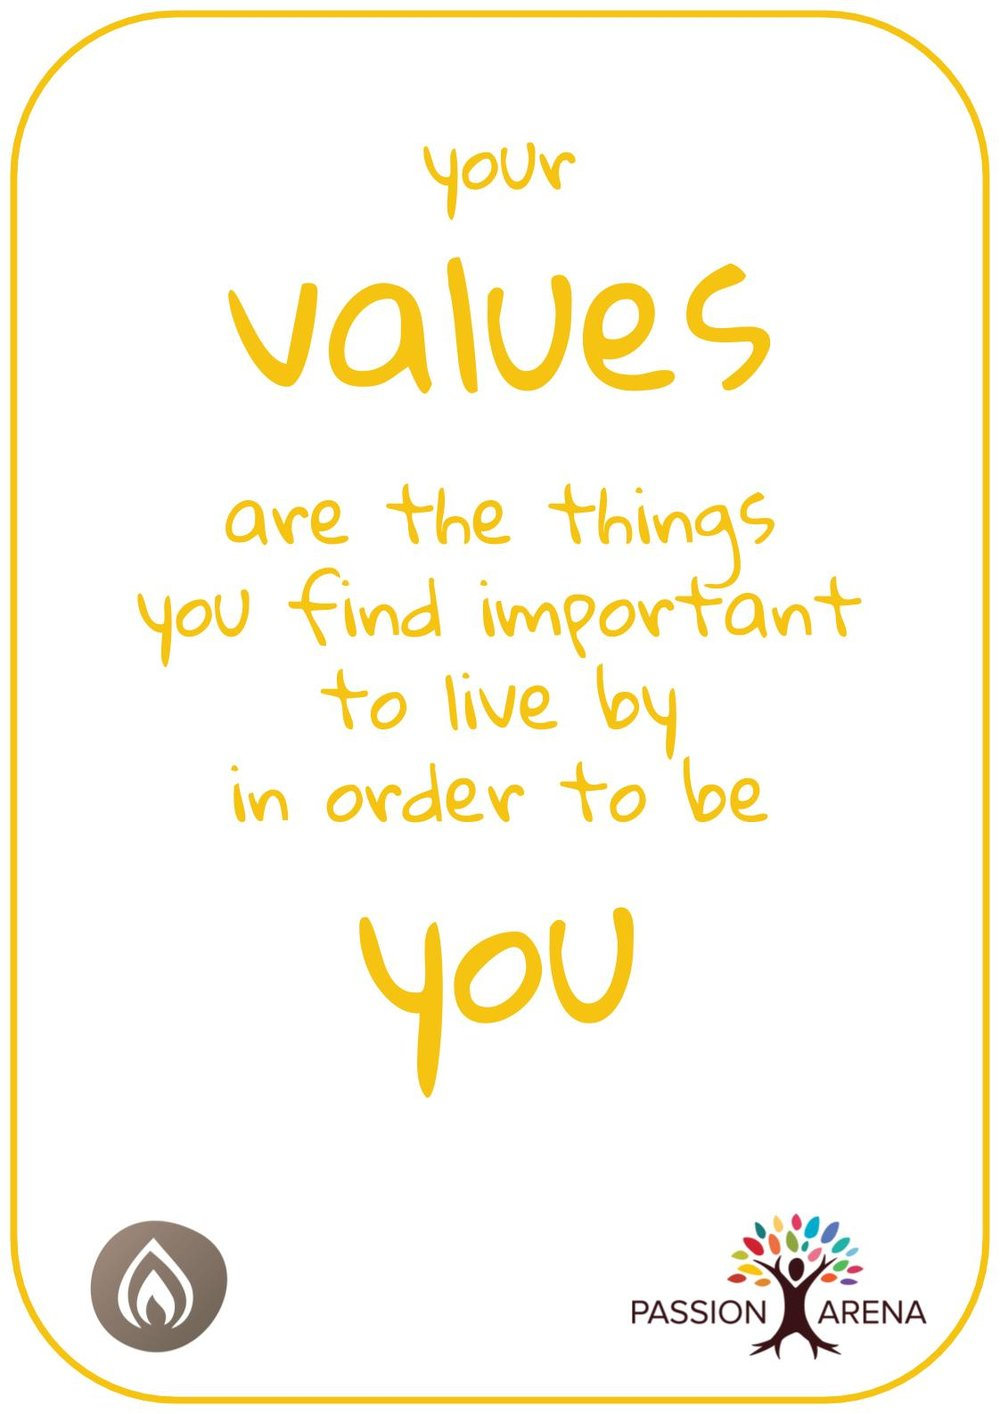 Intro-2-29. What are your values and beliefs?